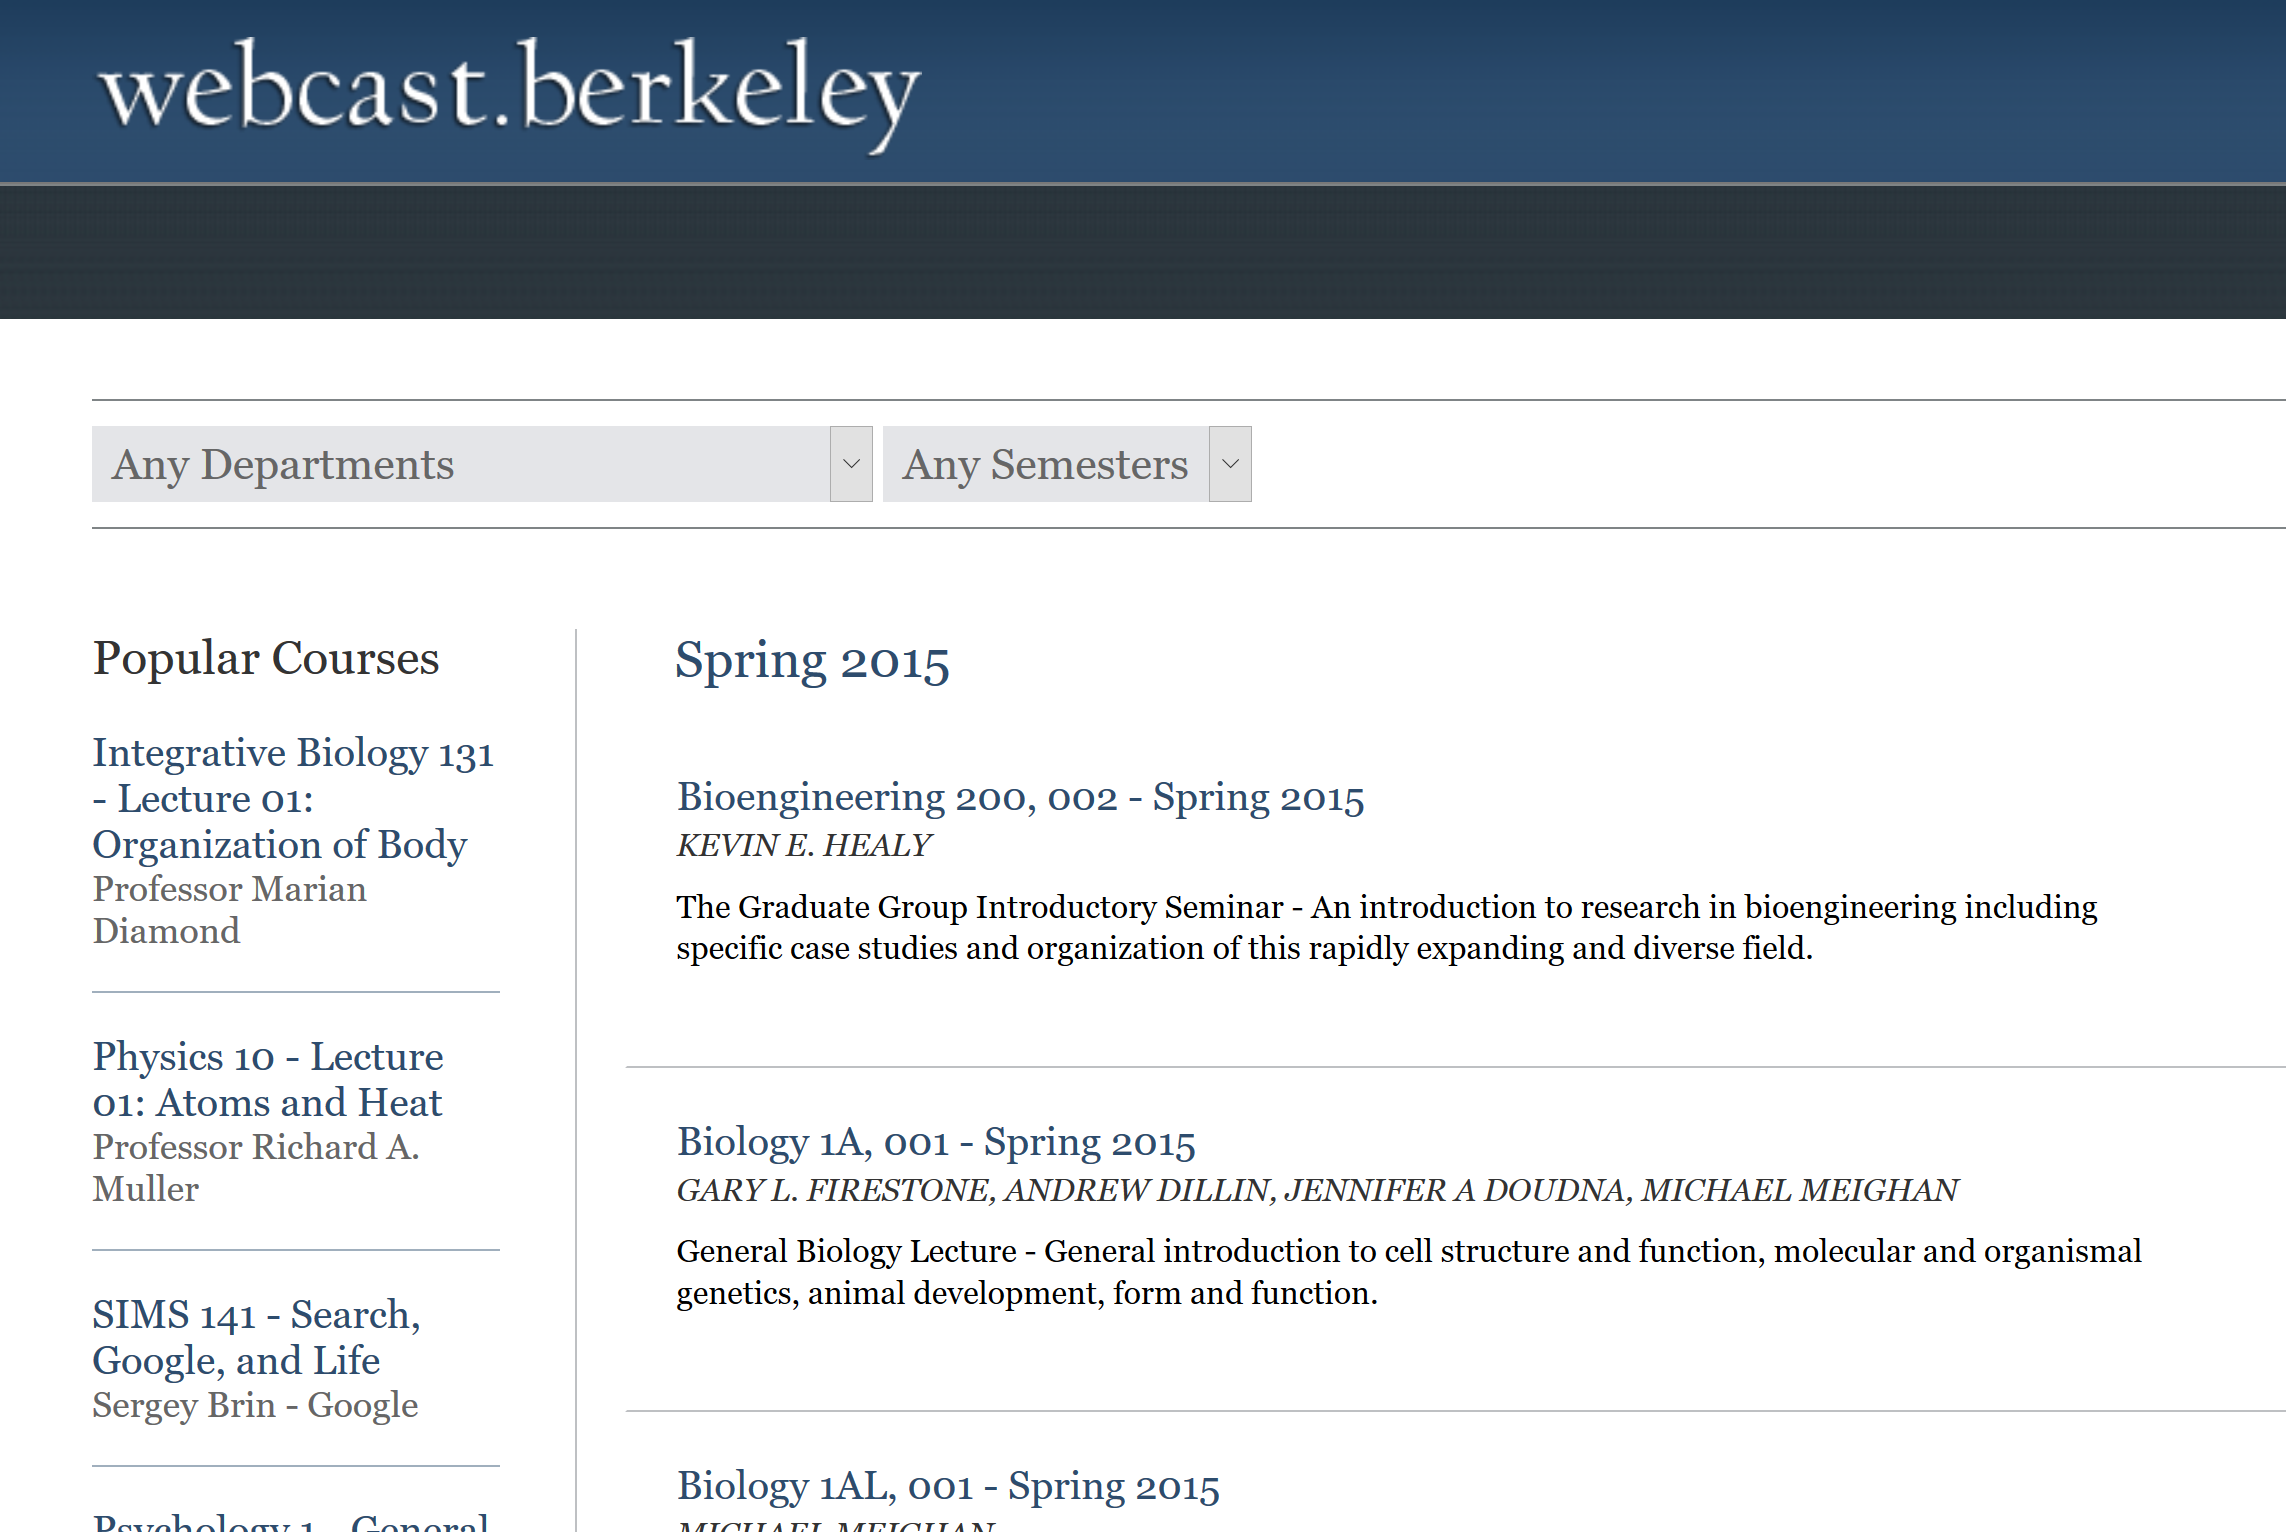 files/images/webcast.berkeley.PNG